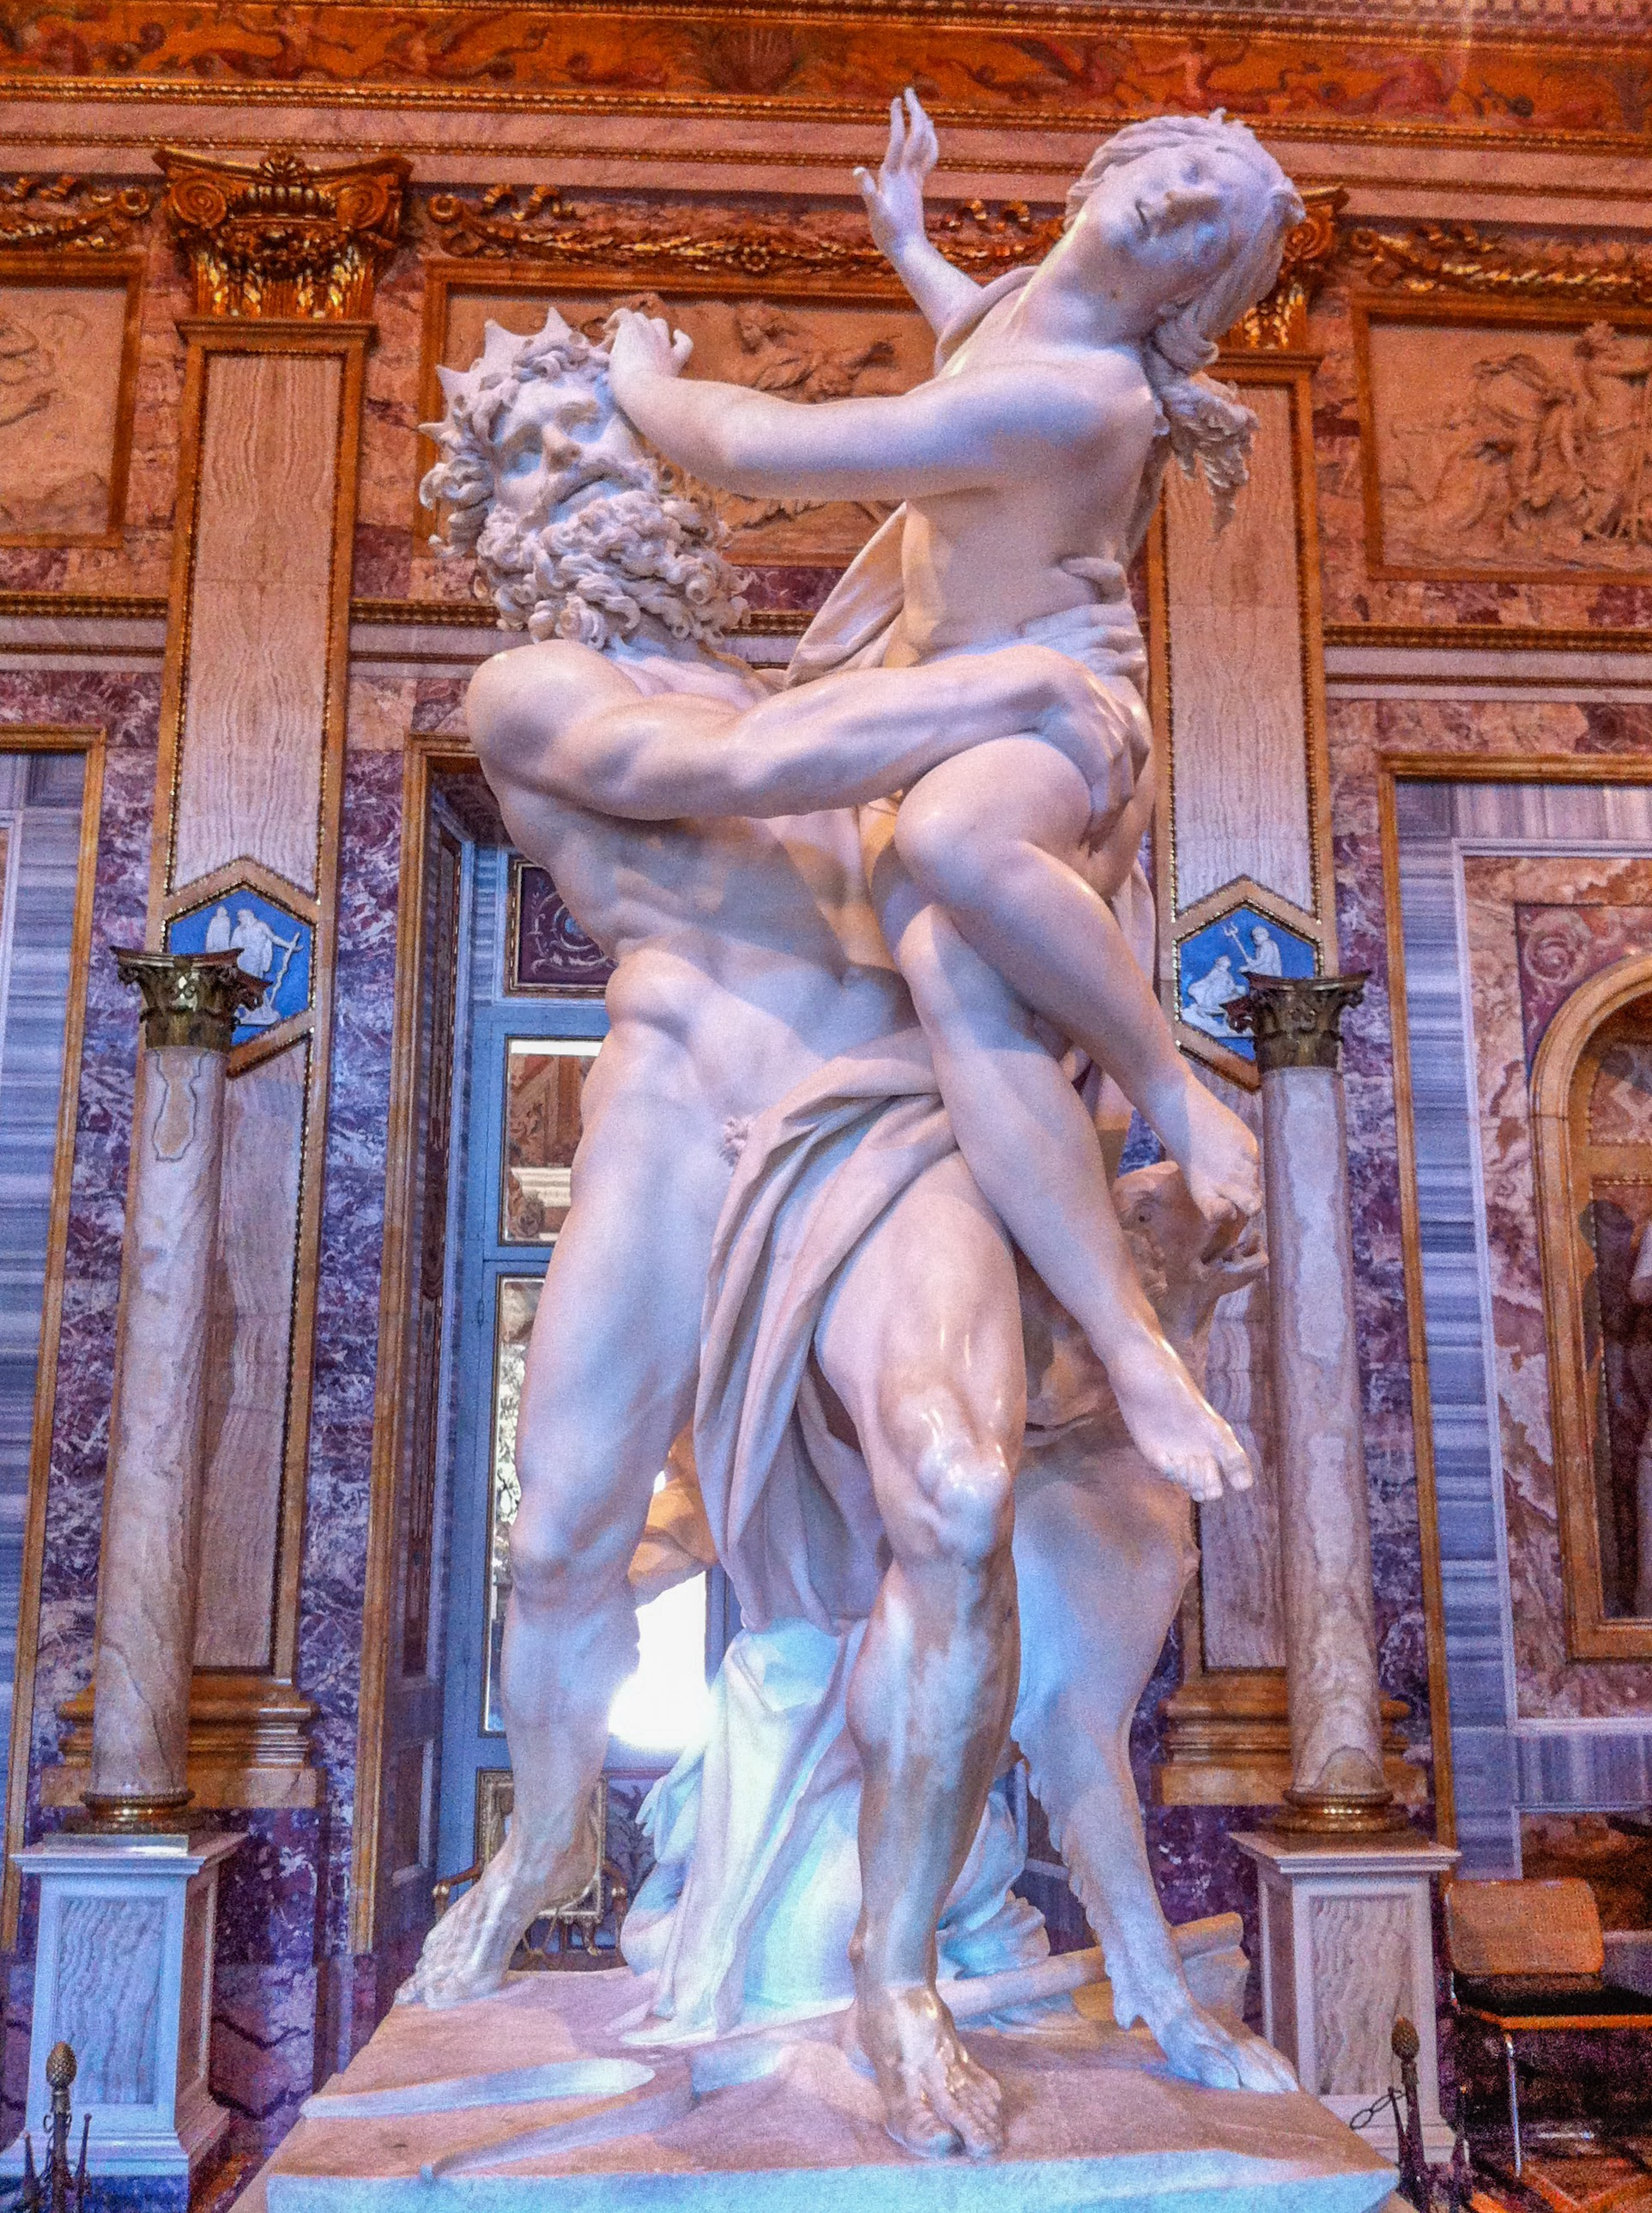 Purchasing the audio guide enhanced my visit to the Vatican and other museums in Italy